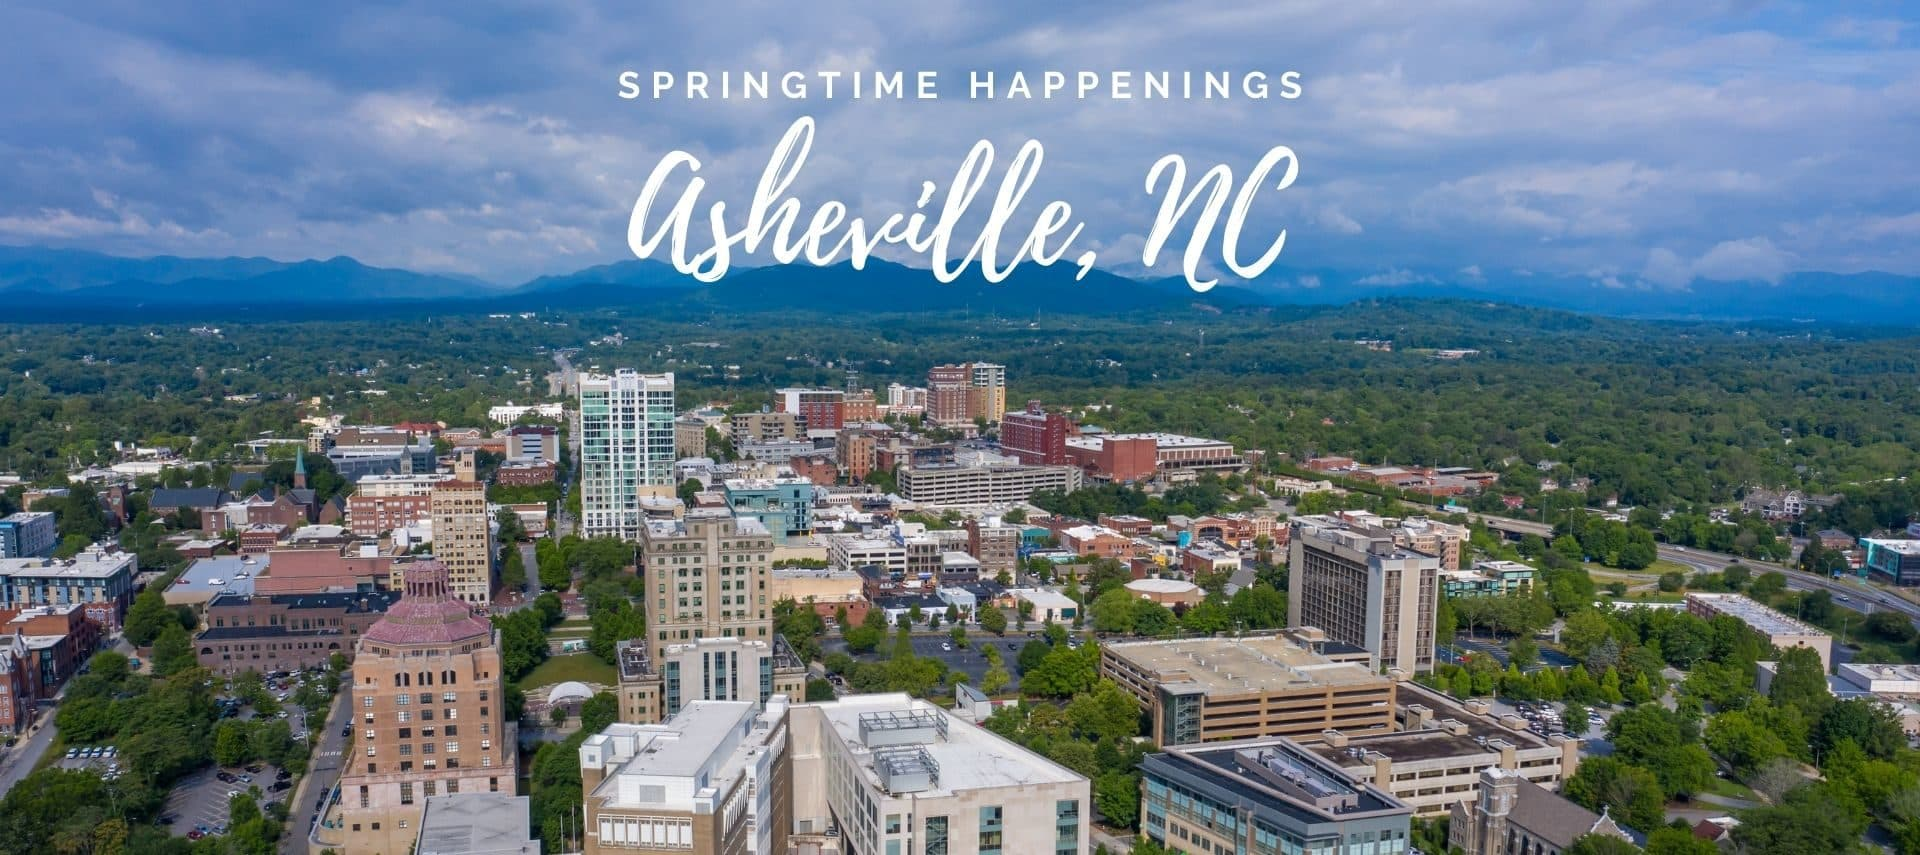 Aerial overviefw of downtown Asheville during the day